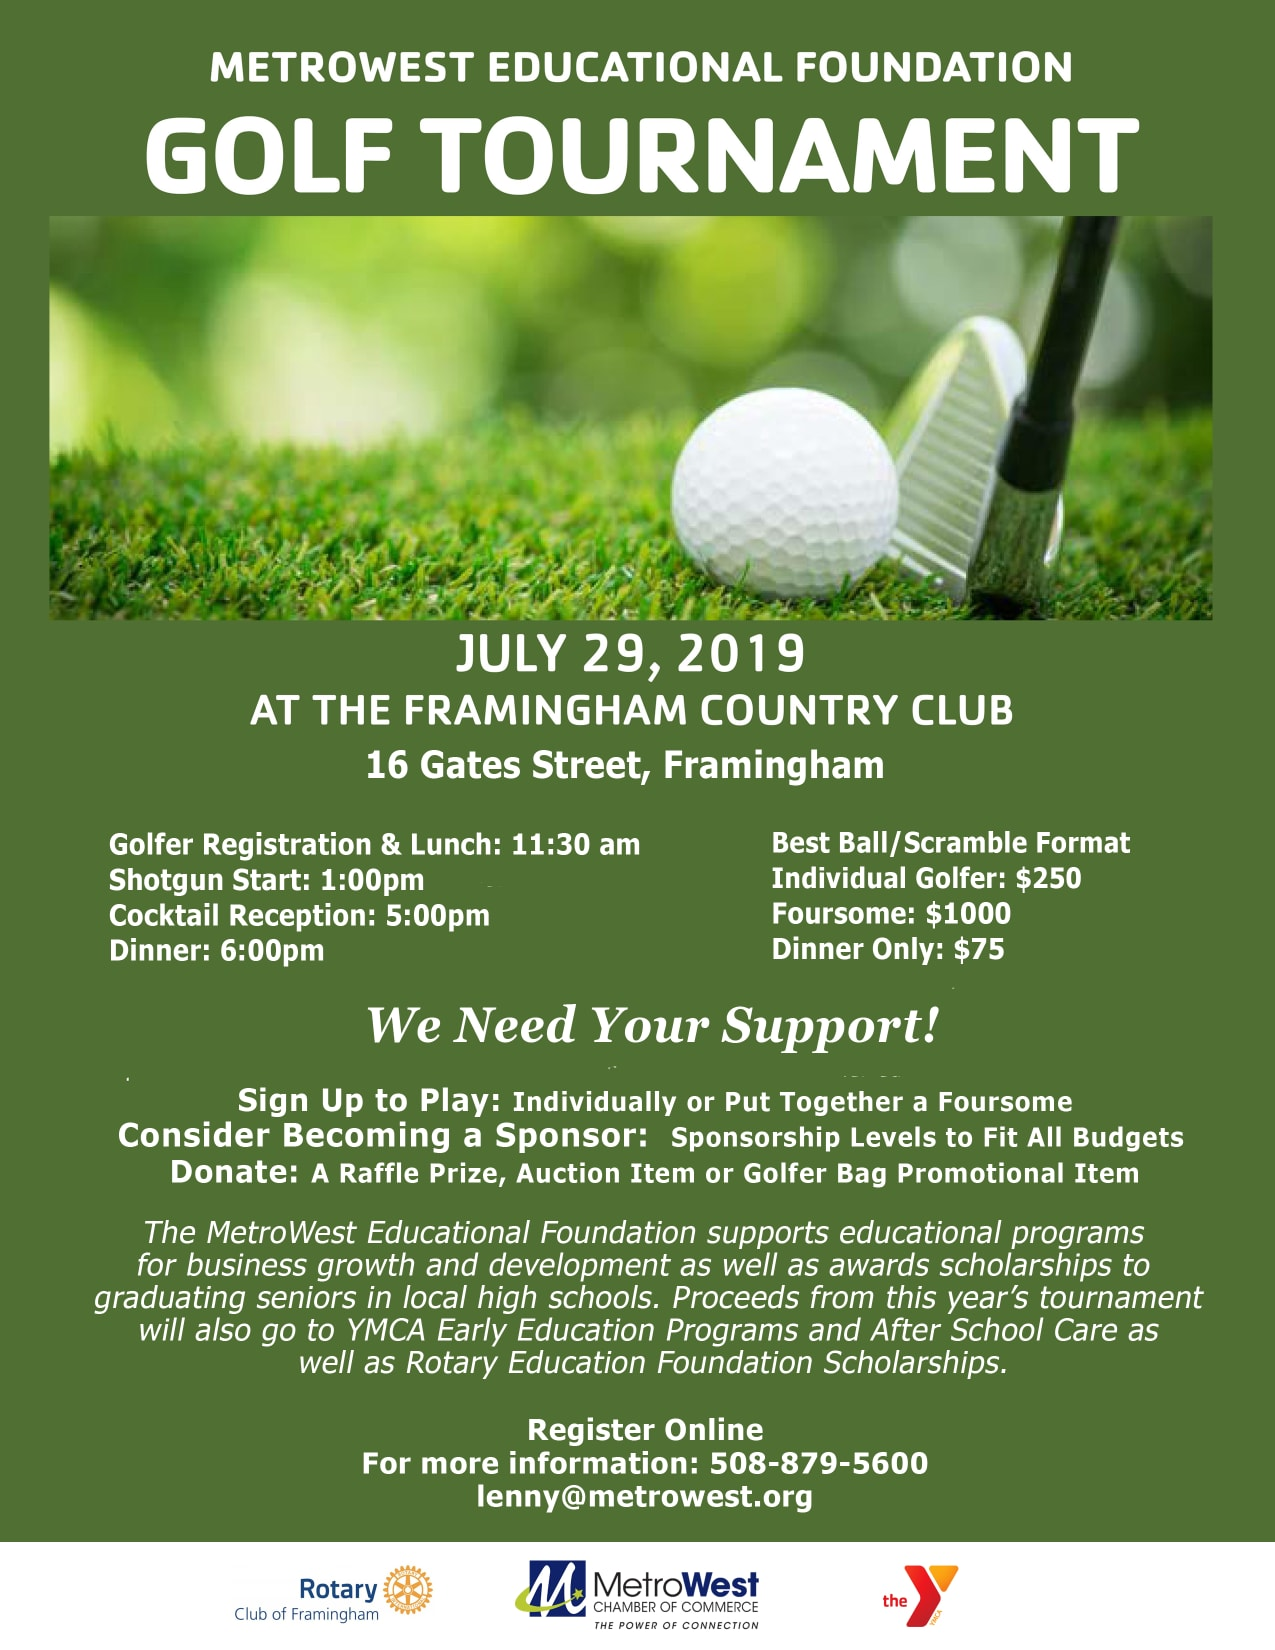 843a8118b4 MW Ed Foundation Golf Tournament - MetroWest Chamber of Commerce, MA